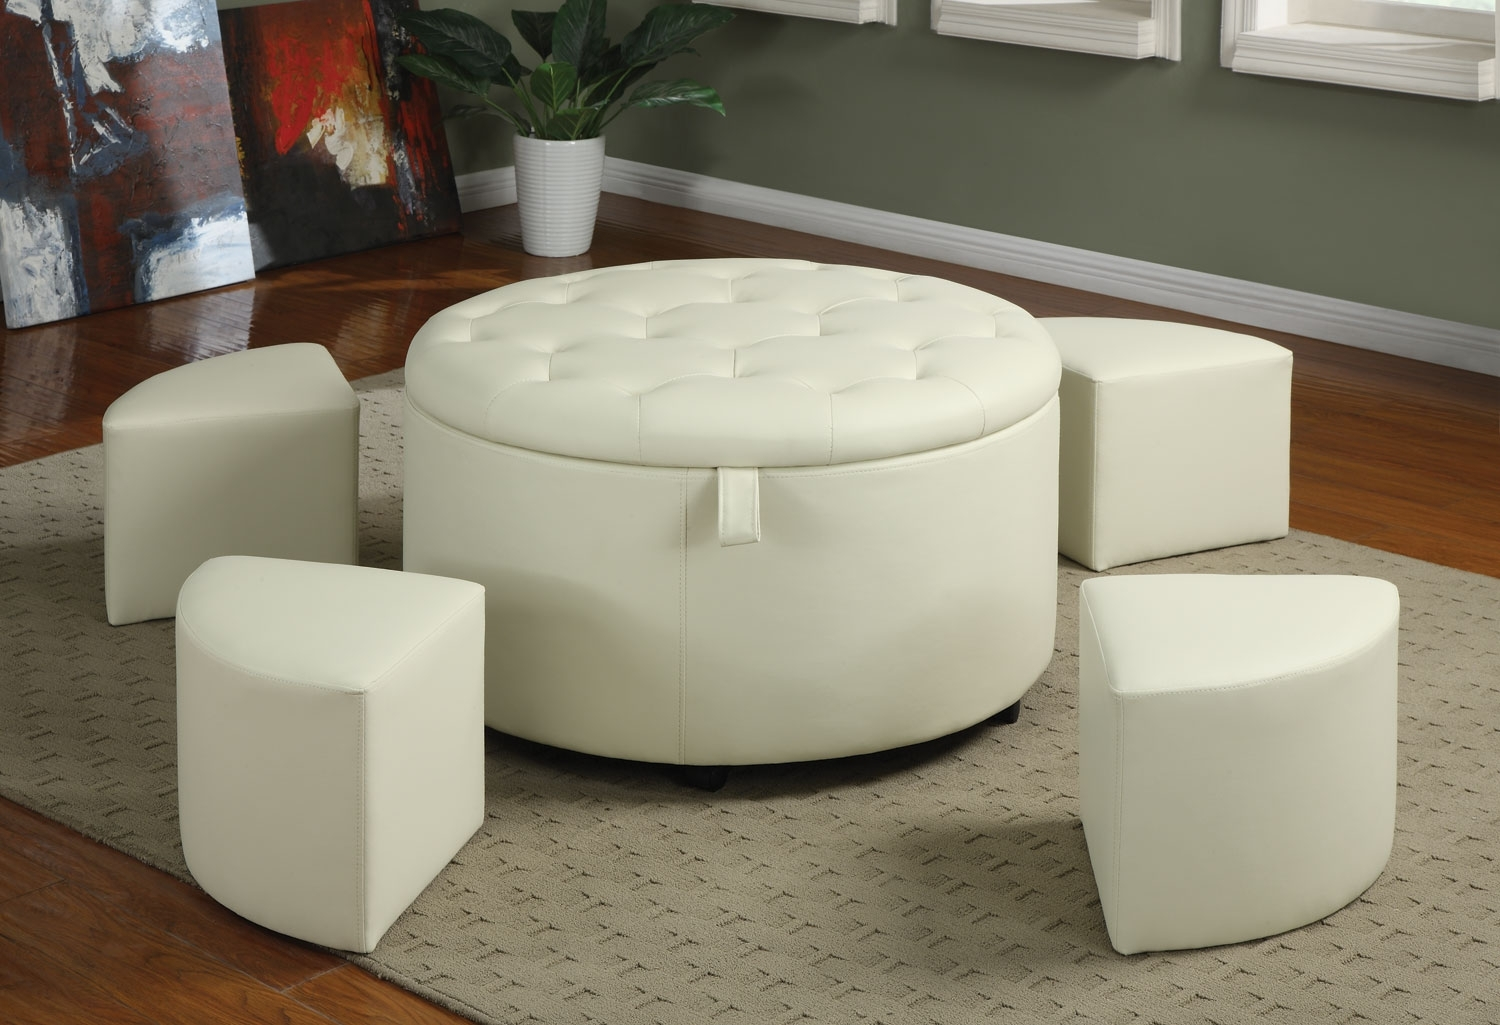 Saving Small Spaces Living Room Design Using White Round Leather throughout Round Button Tufted Coffee Tables (Image 24 of 30)